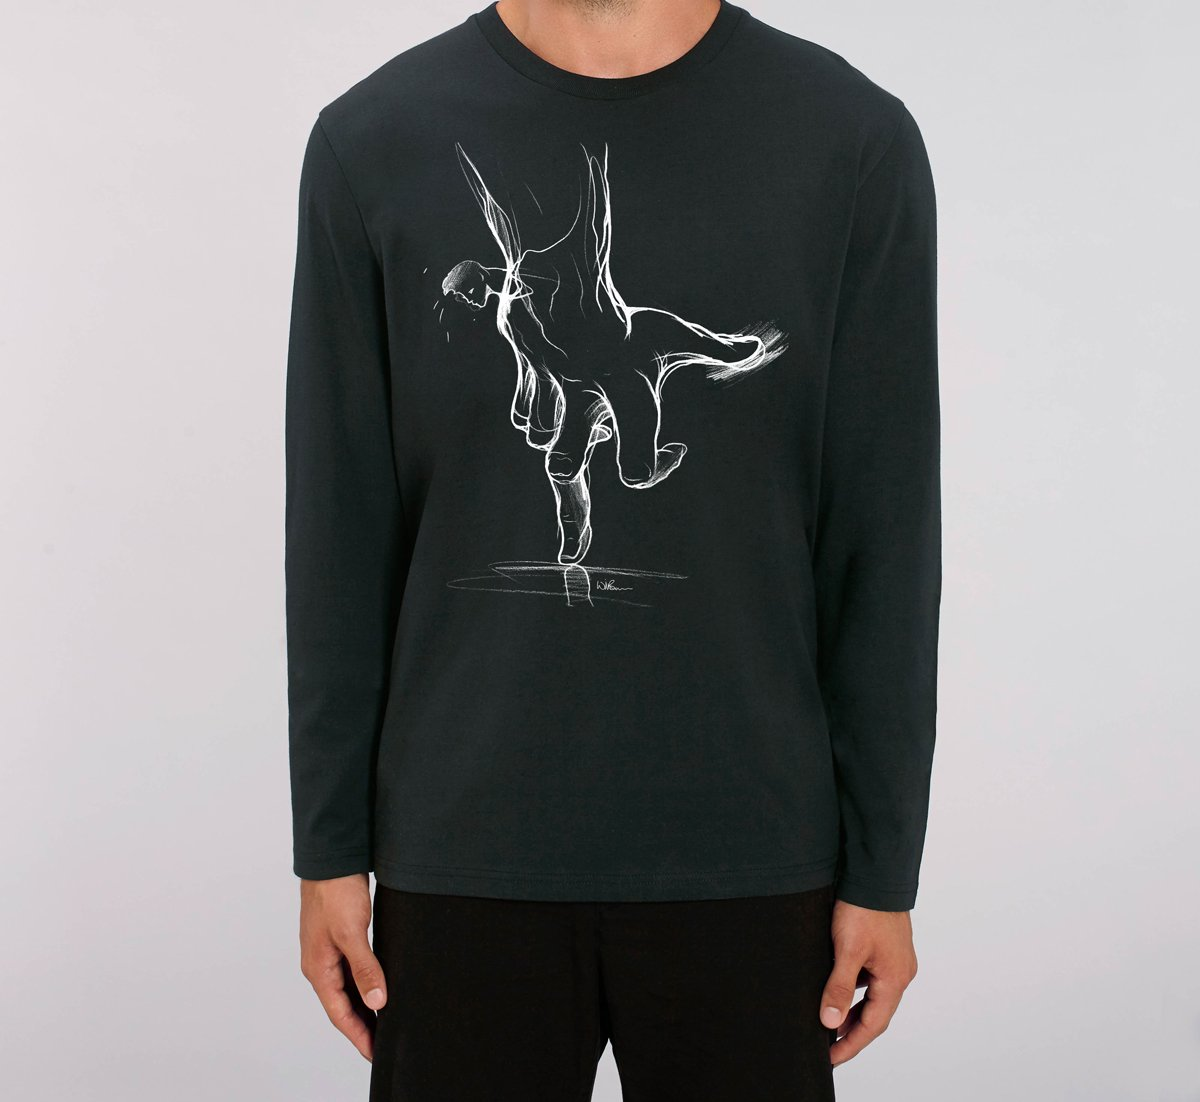 Will Barras 'Trust Hand' Long Sleeve T-Shirt